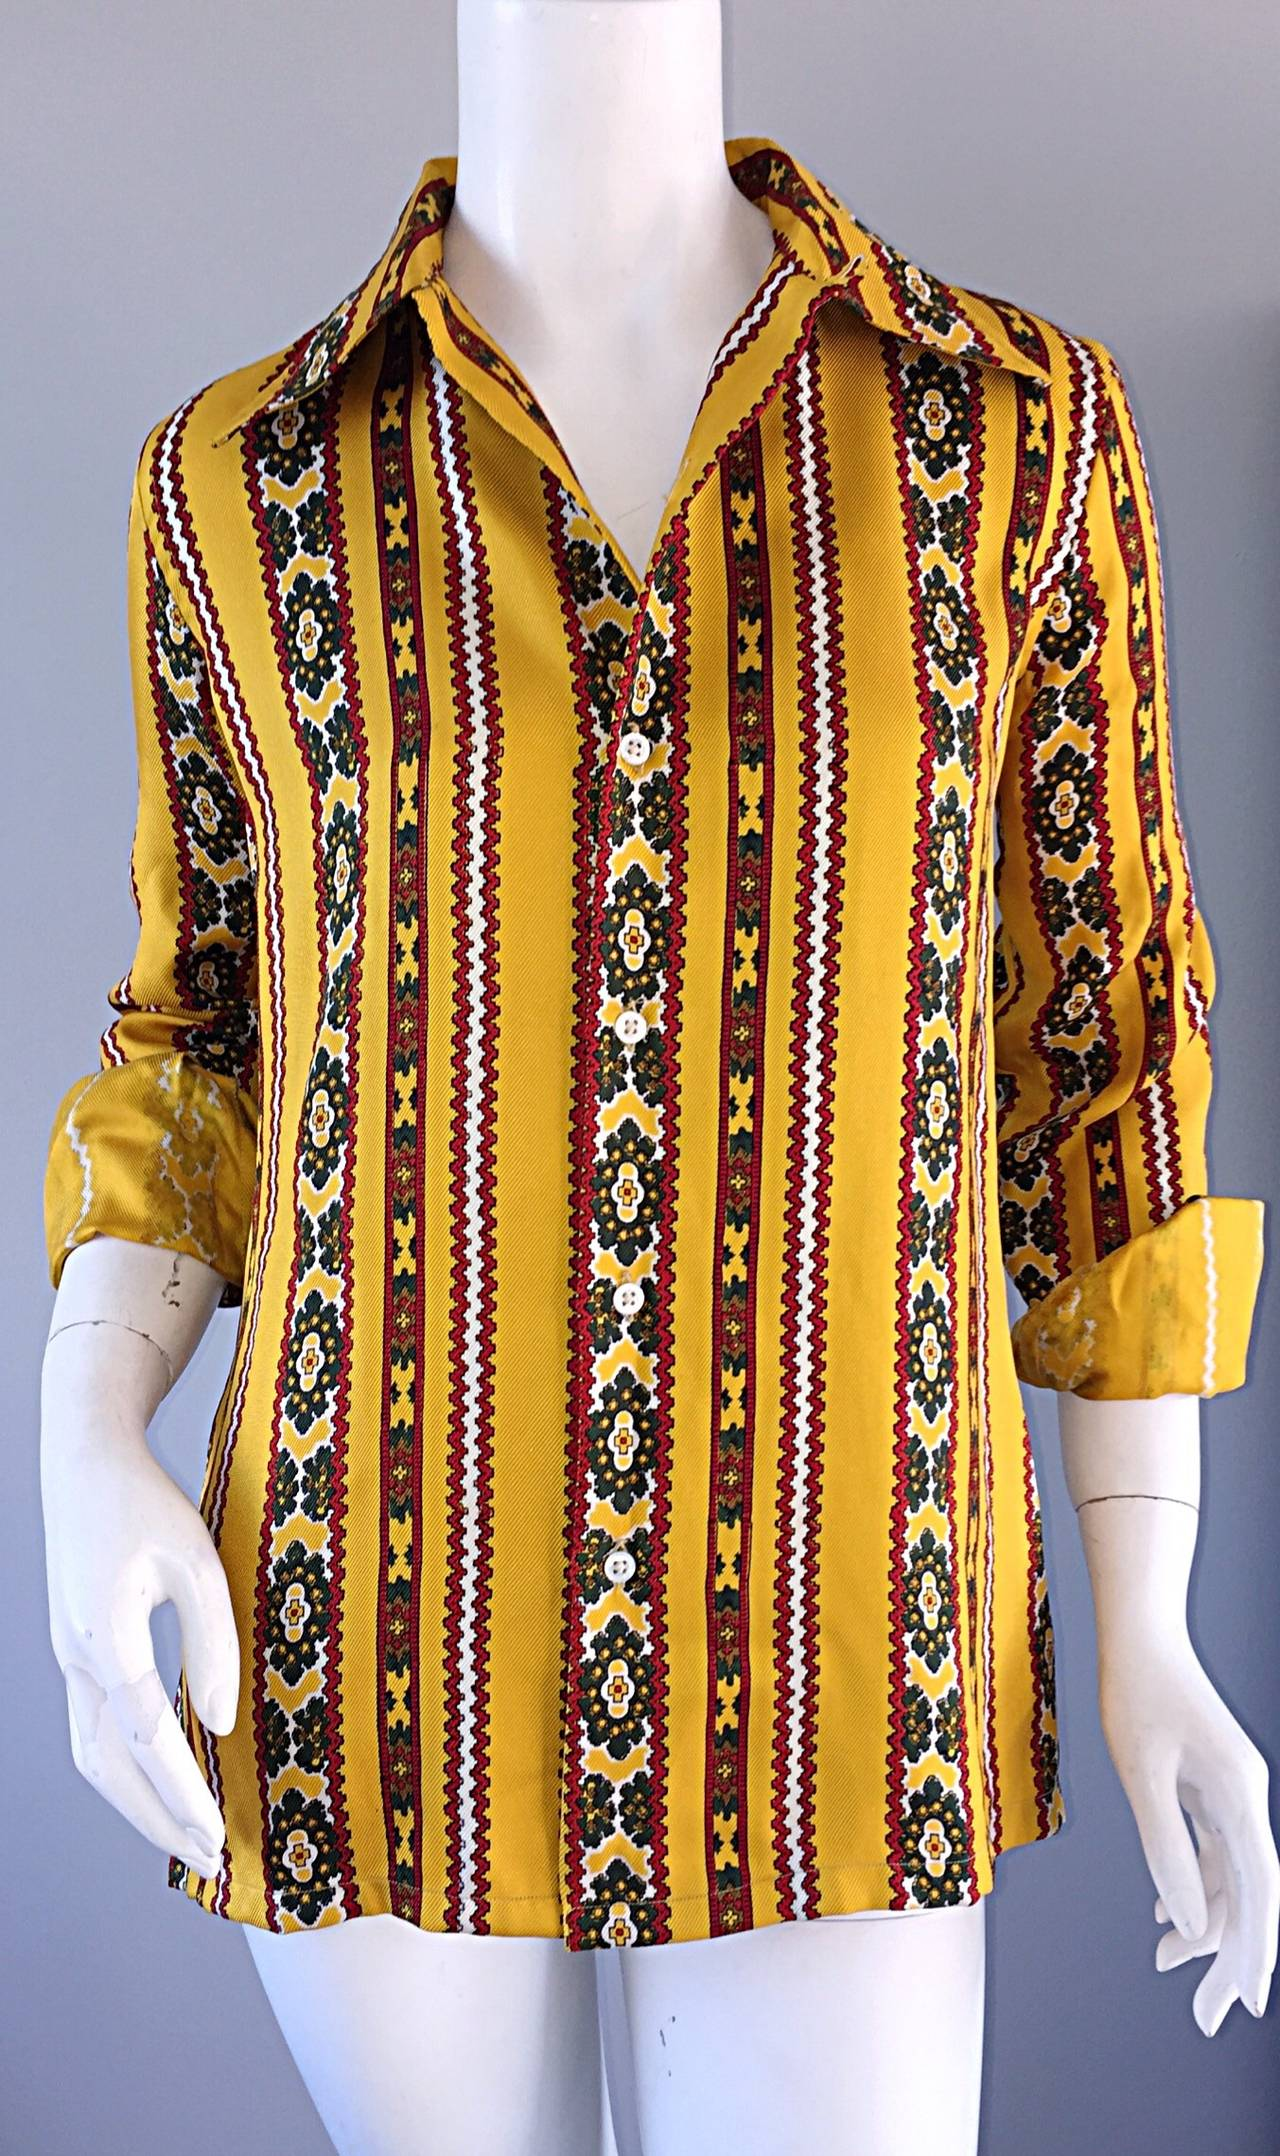 Rare 1980s Ralph Lauren ' Blue Label ' Vintage Aztec Ethnic Silk Blouse Top For Sale 1